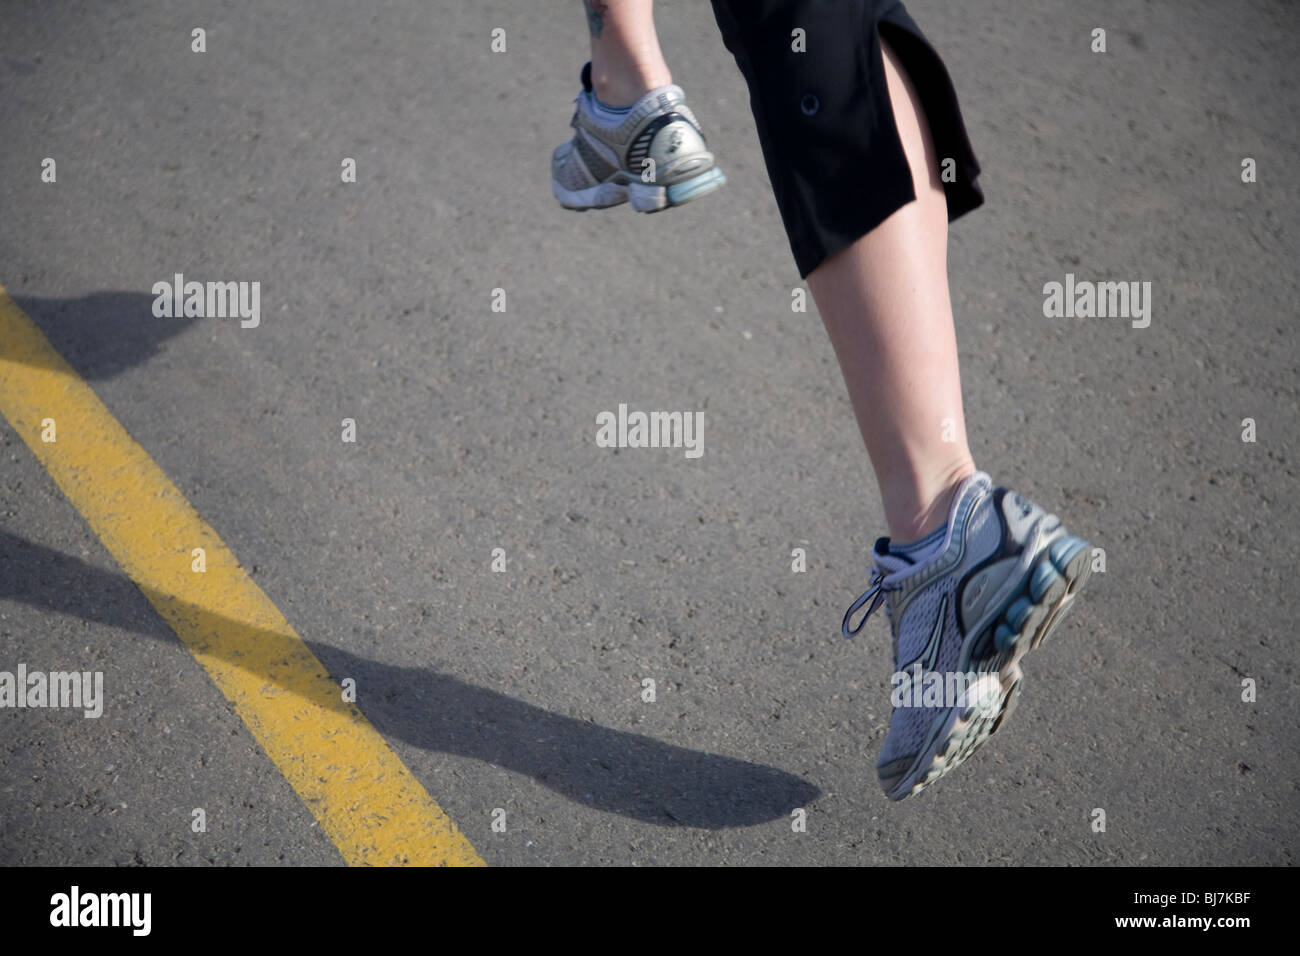 Close-up of a runner's feet and legs Stock Photo